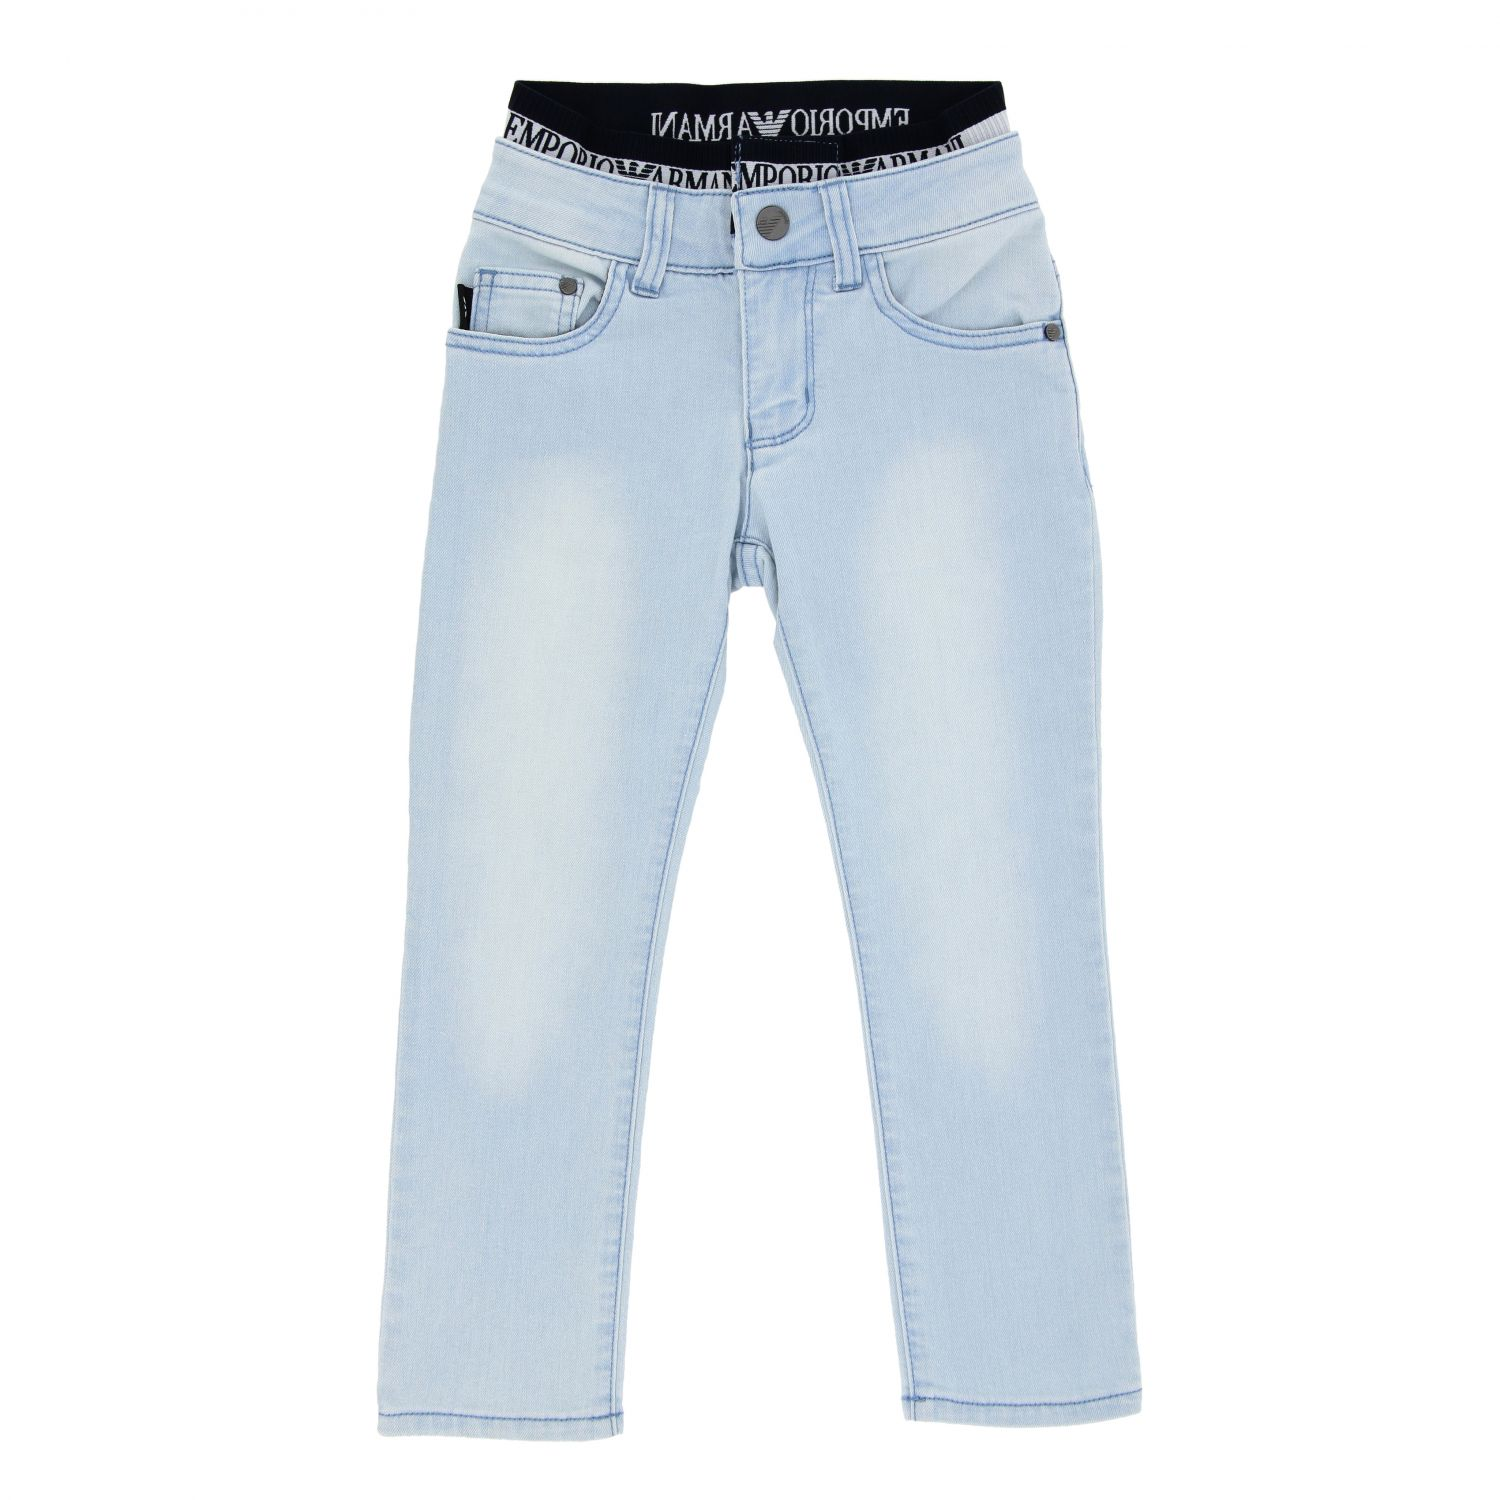 Emporio Armani jeans in used denim with logoed band stone washed 1